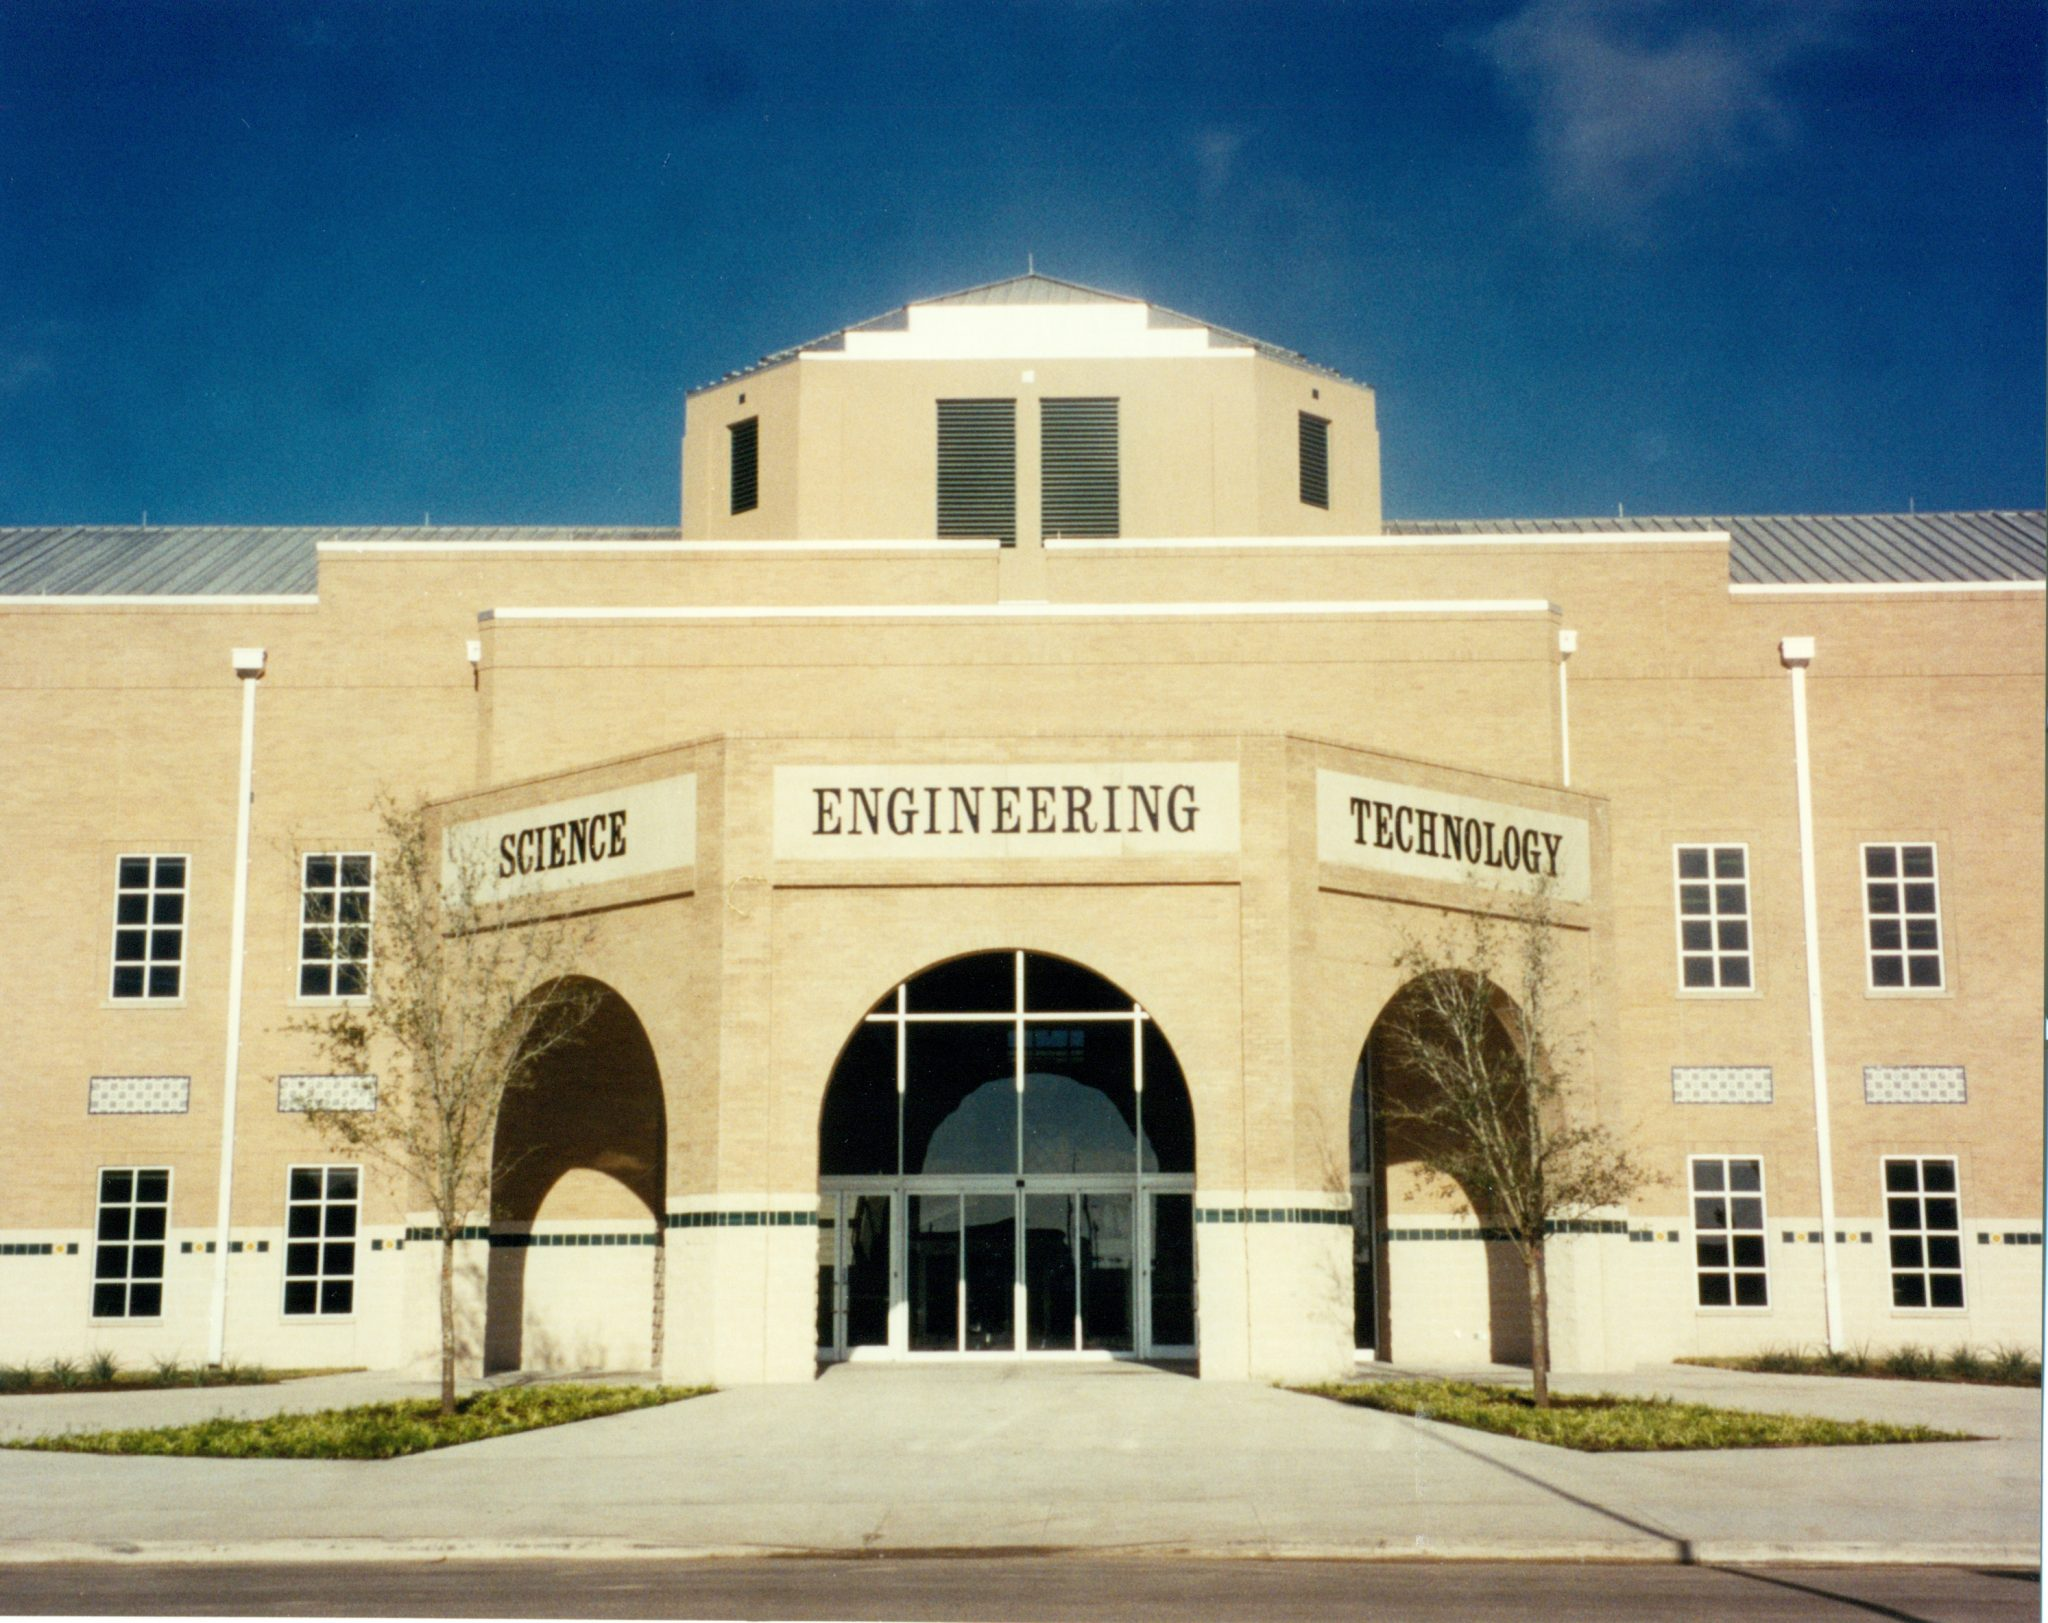 UT Science & Engineering Building, Brownsville, TX